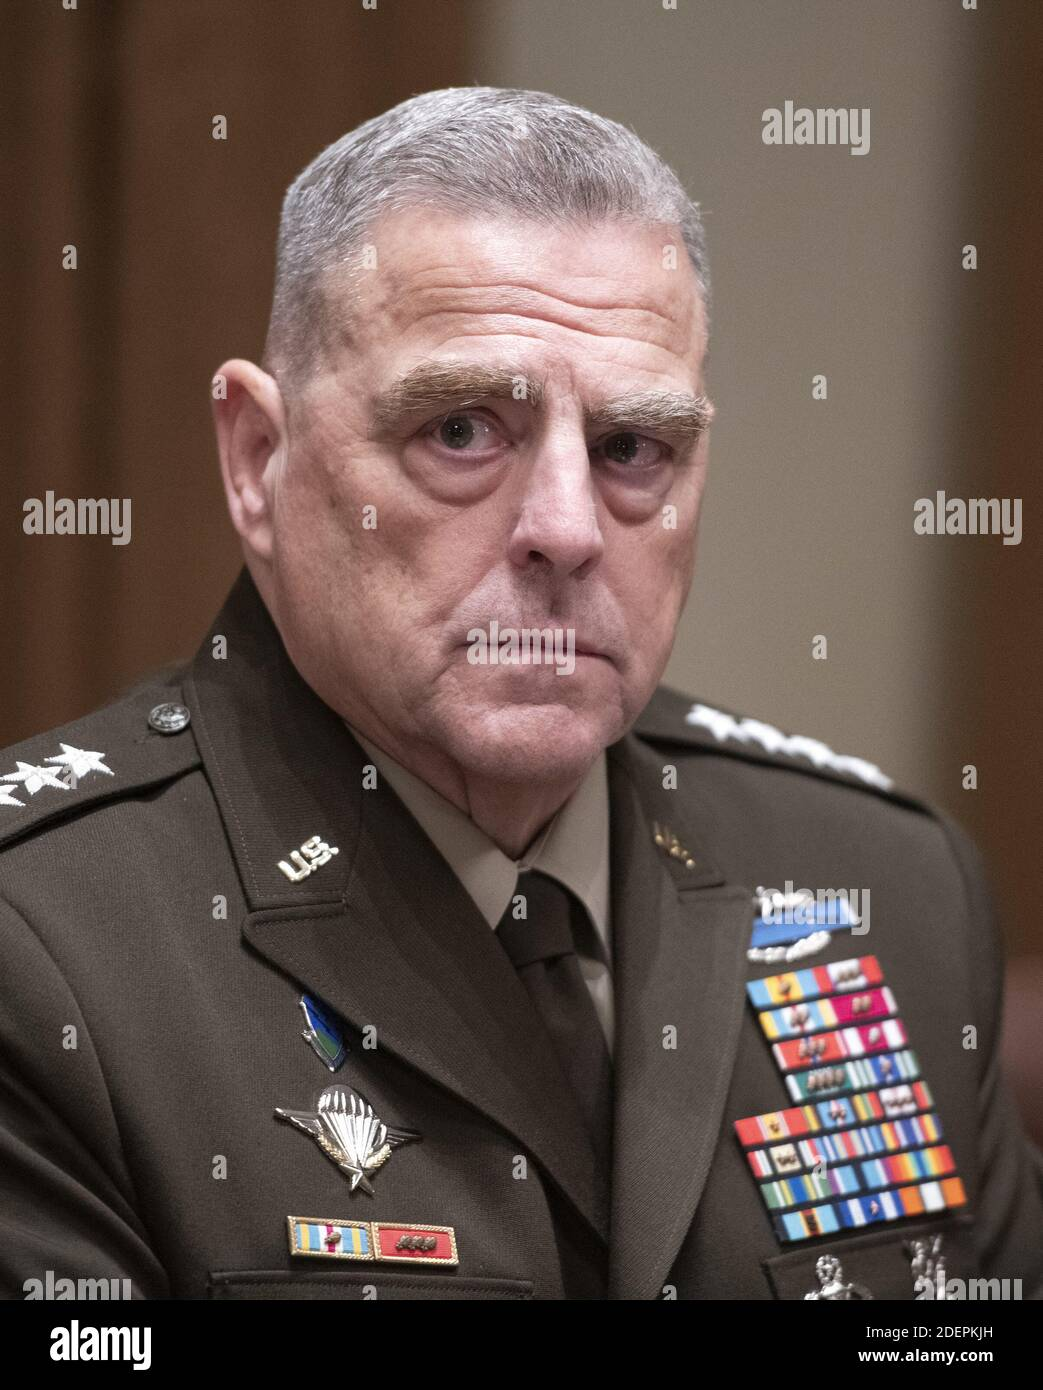 United States Army General Mark A. Milley, Chairman of the Joint Chiefs of Staff, participates in a briefing with US President Donald J. Trump and senior military leaders in the Cabinet Room of the White House in Washington, DC, USA on Monday, October 7, 2019. Photo by Ron Sachs/CNP/ABACAPRESS.COM Stock Photo